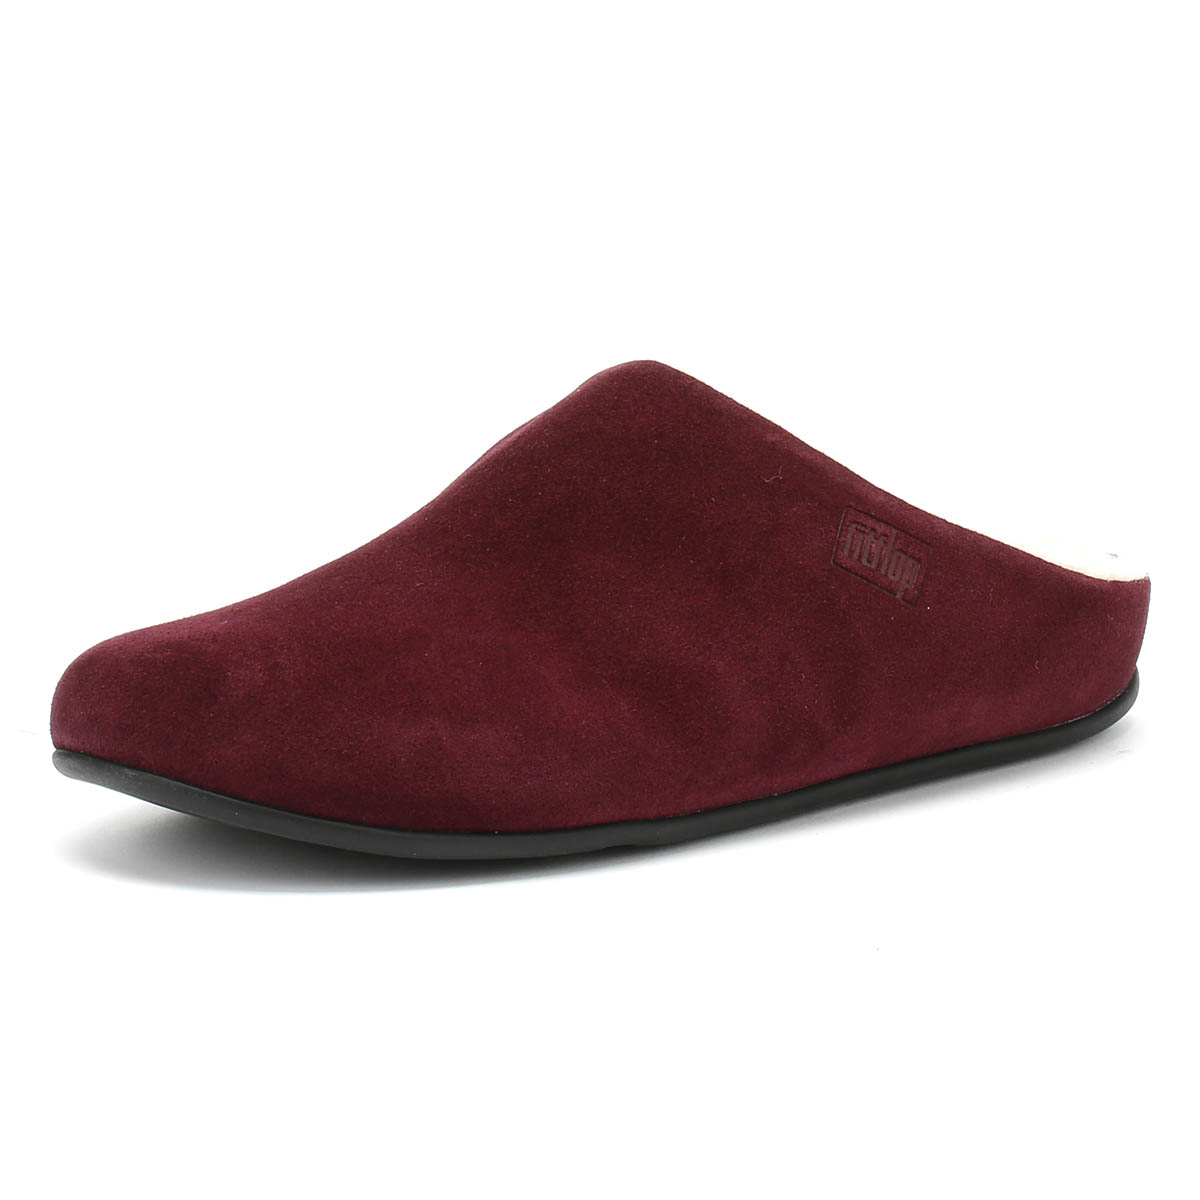 833998467 Details about FitFlop Chrissie Womens Shearling Berry Slippers Home Shoes